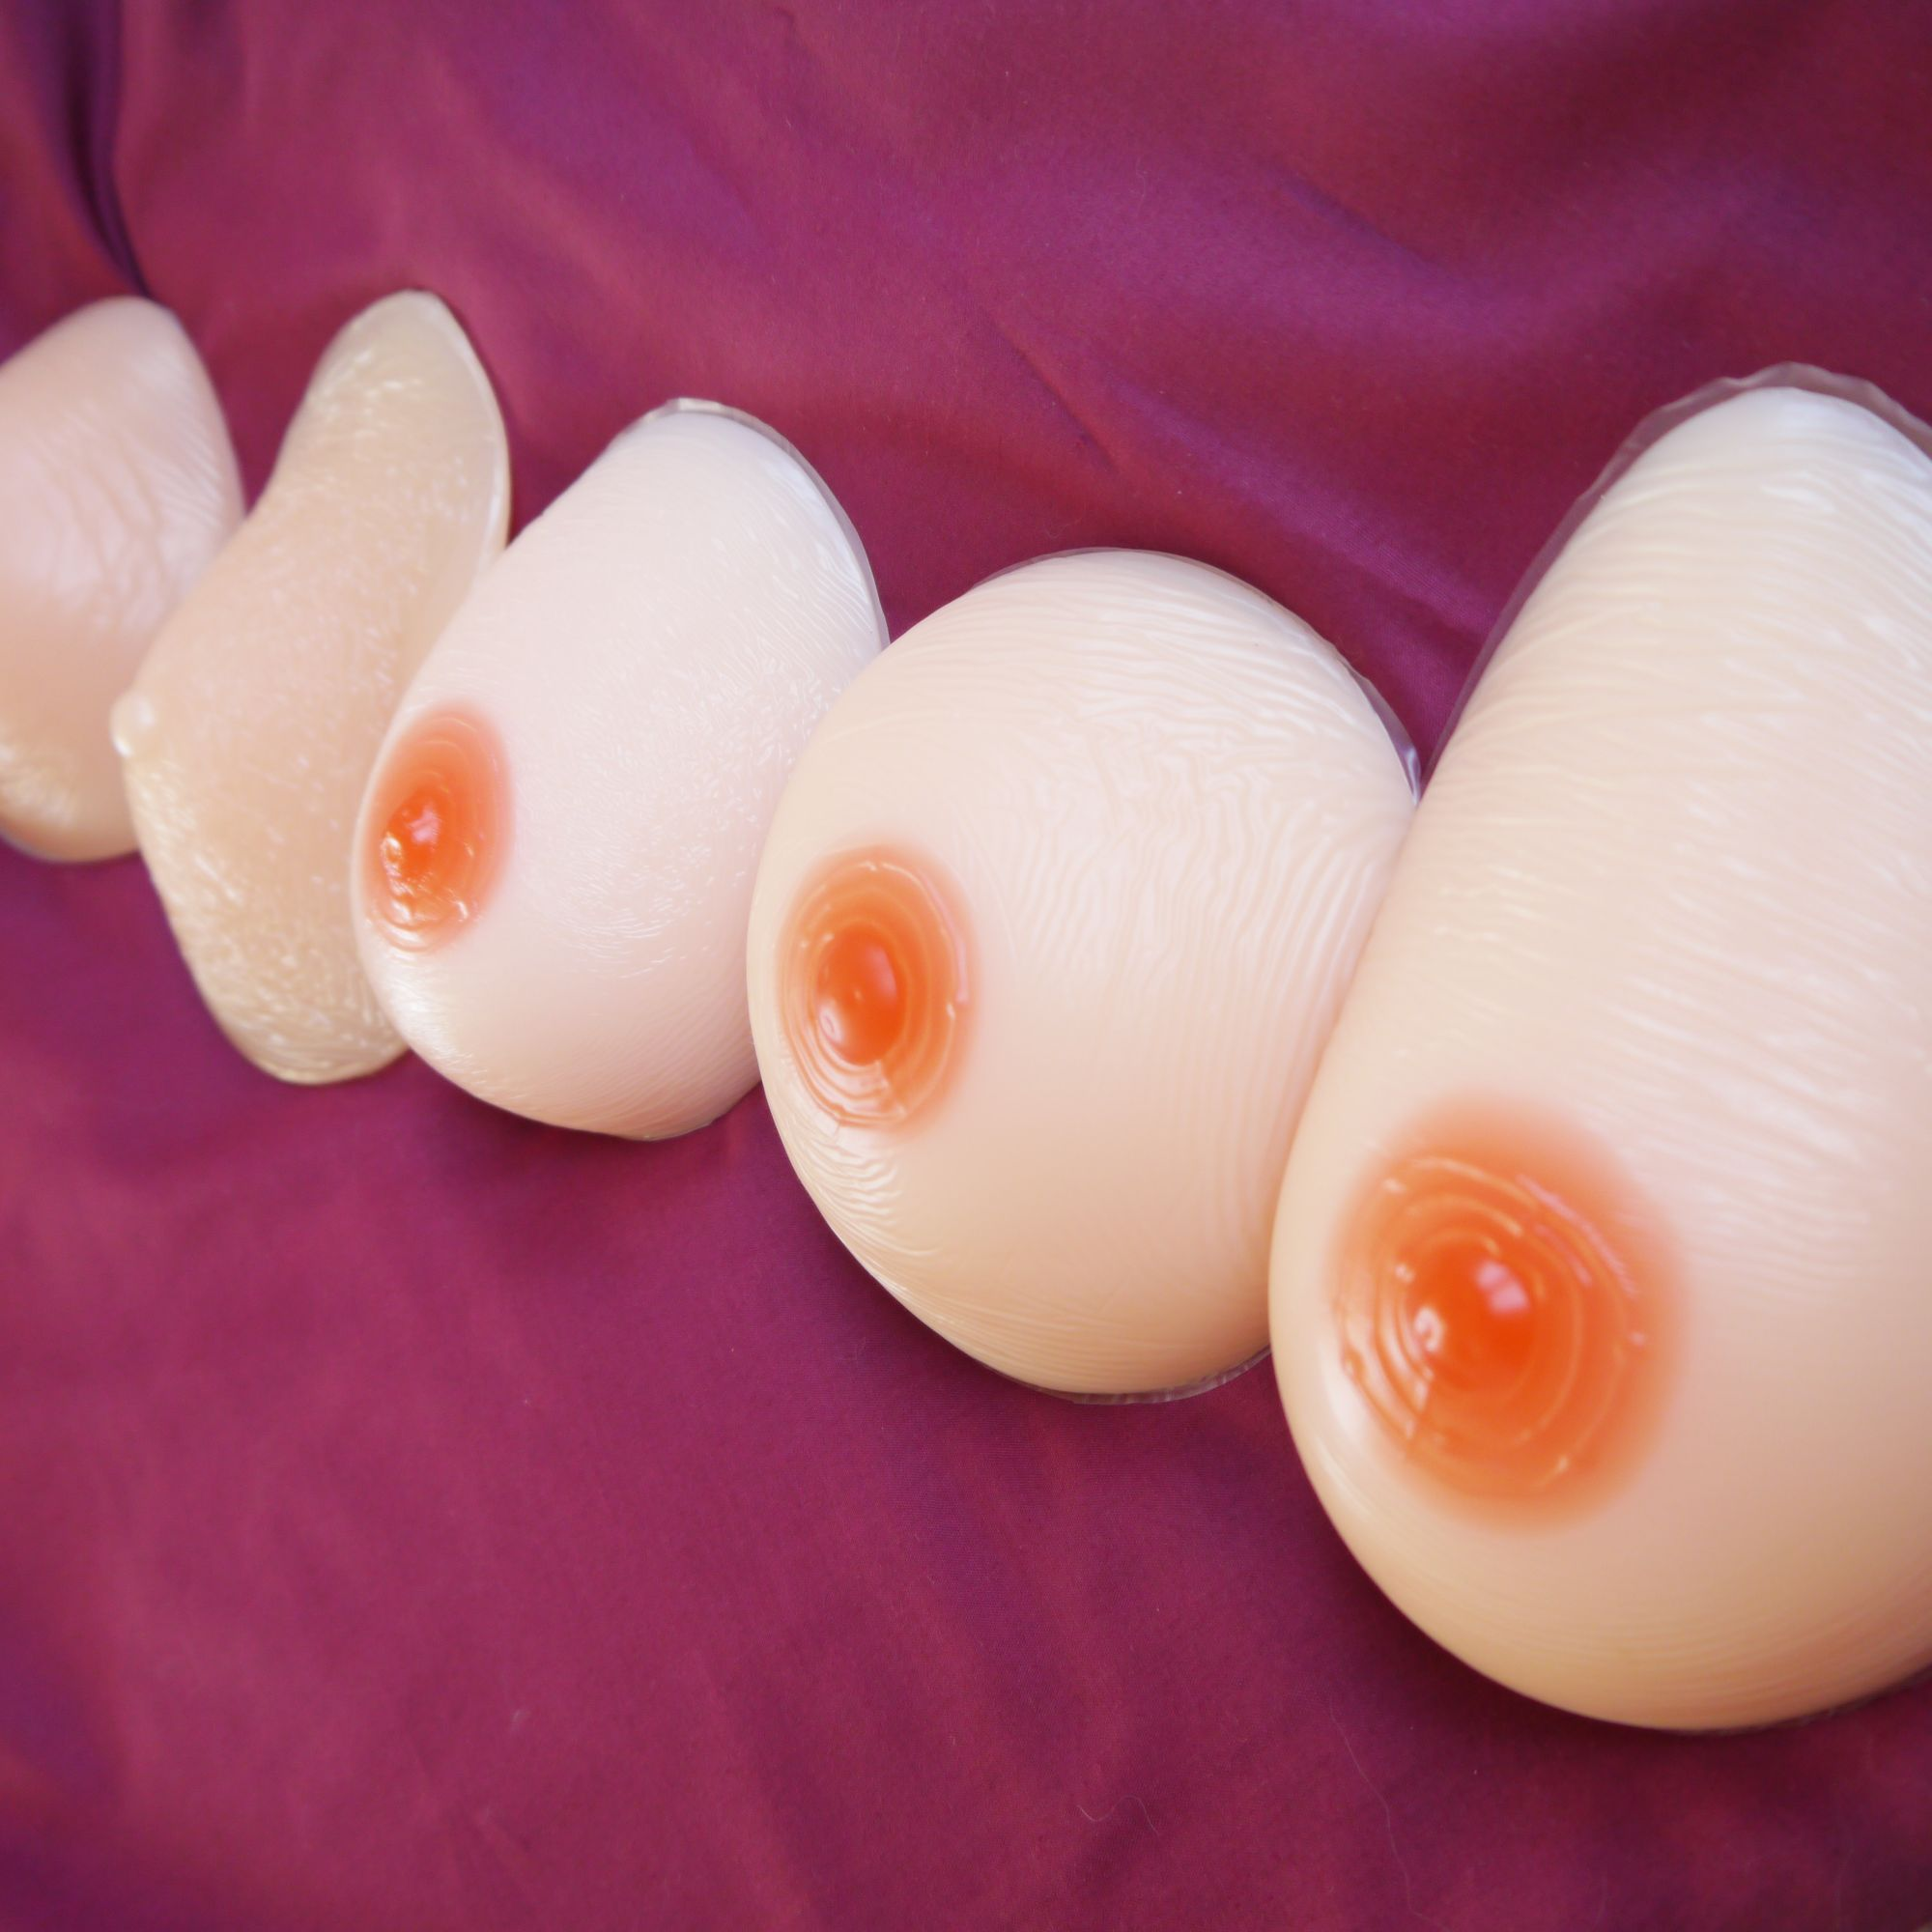 Full breast forms